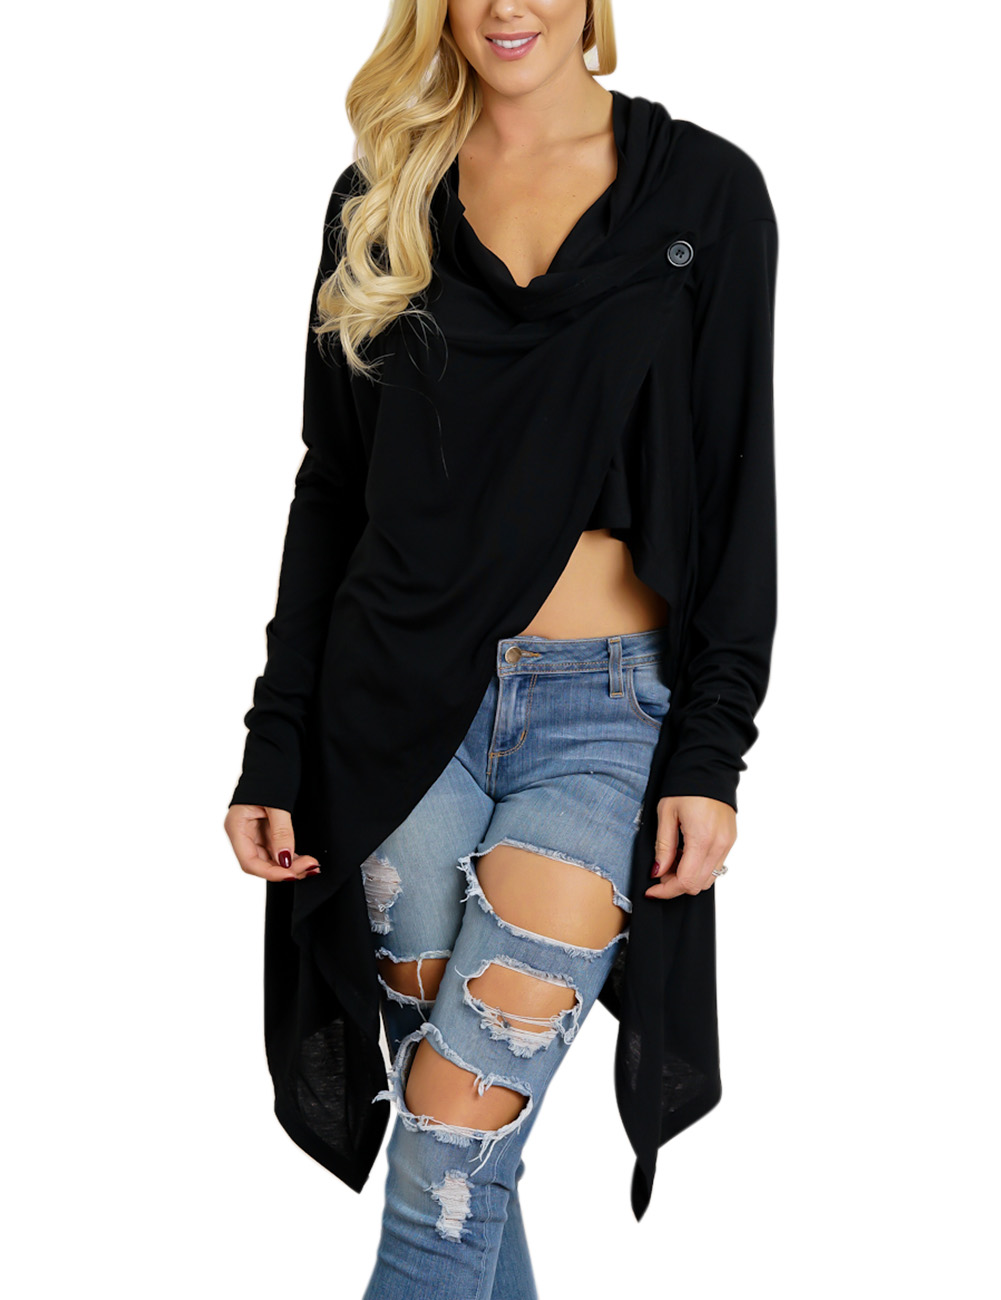 Women Cool Black Cotton Pullover Sweater Long Fashionable Comfortable Clothes